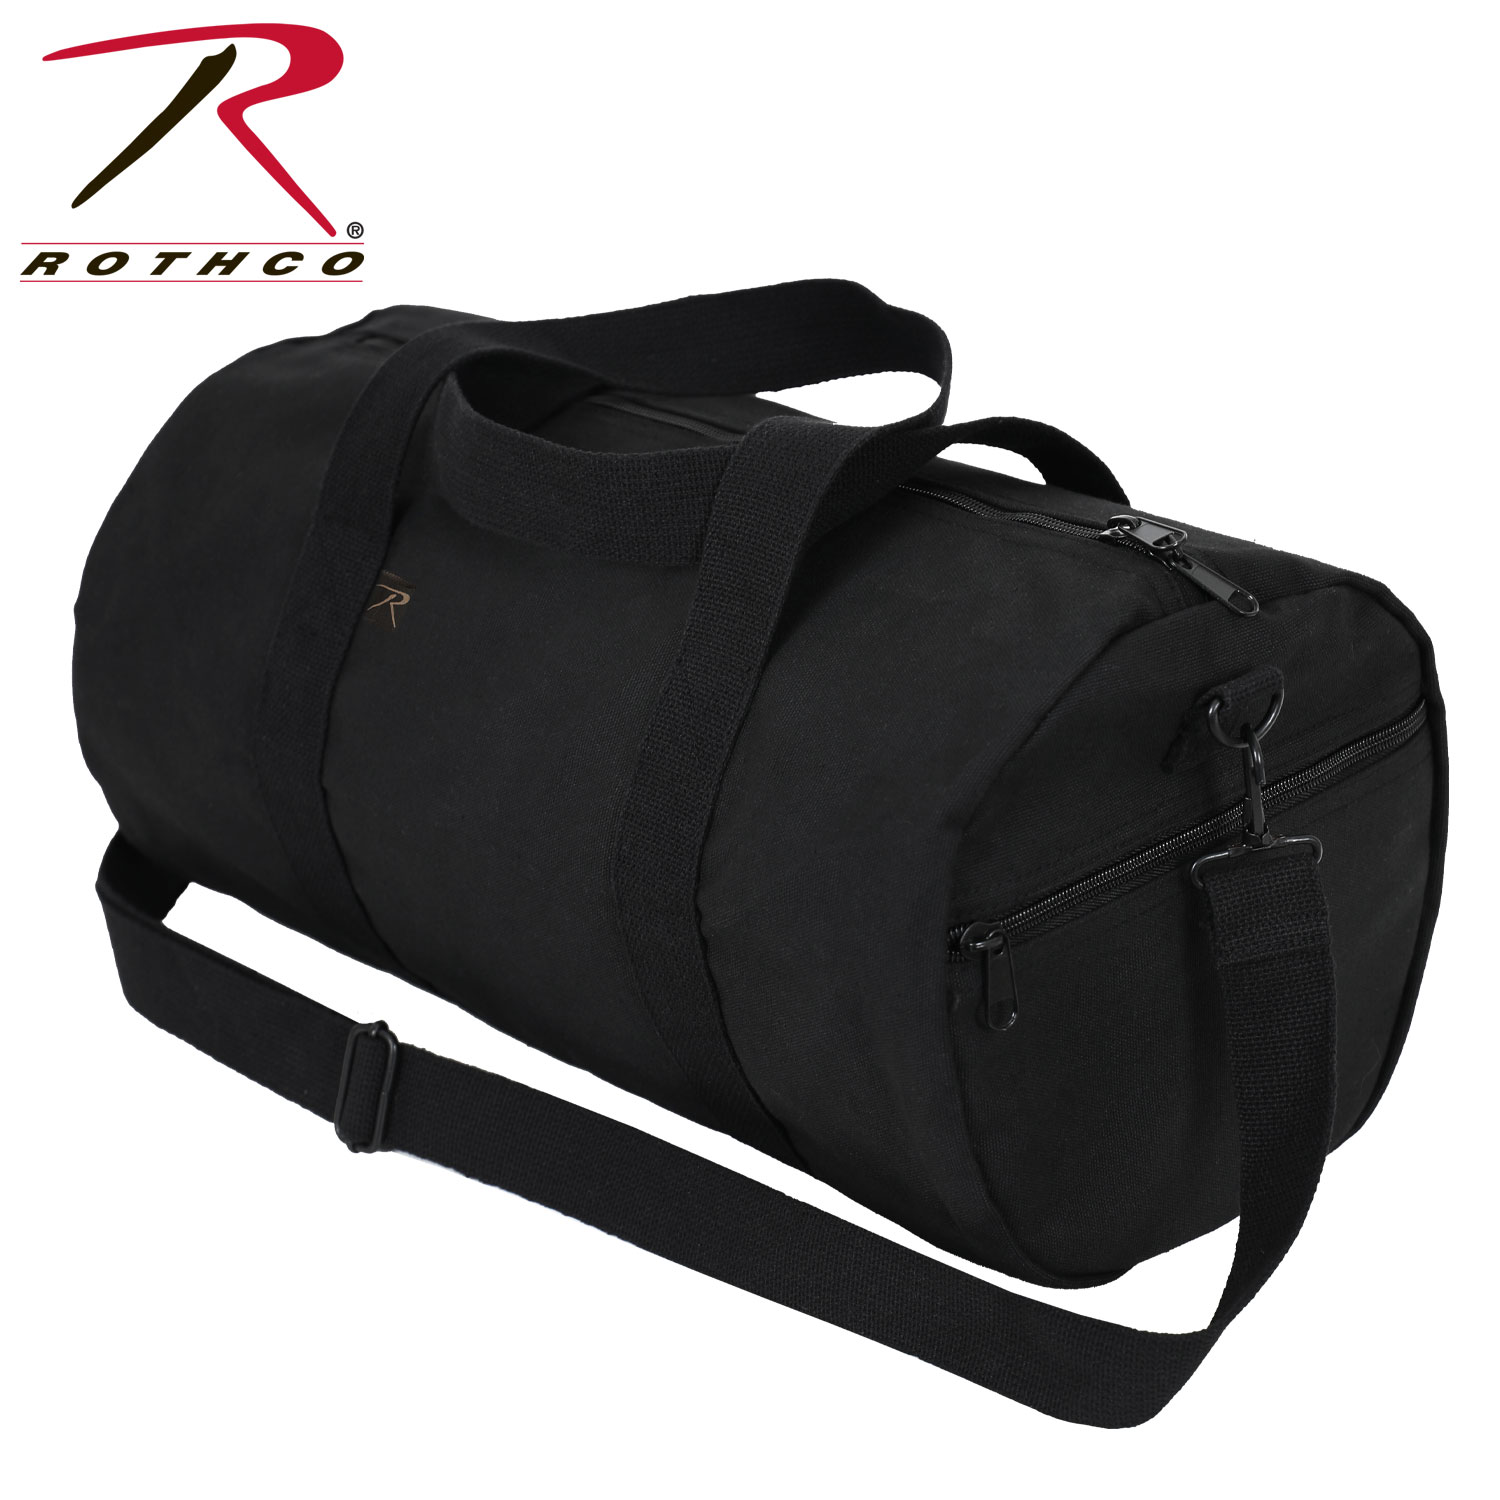 dbd7225437e1 Rothco Canvas Shoulder Duffle Bag 19 Inch